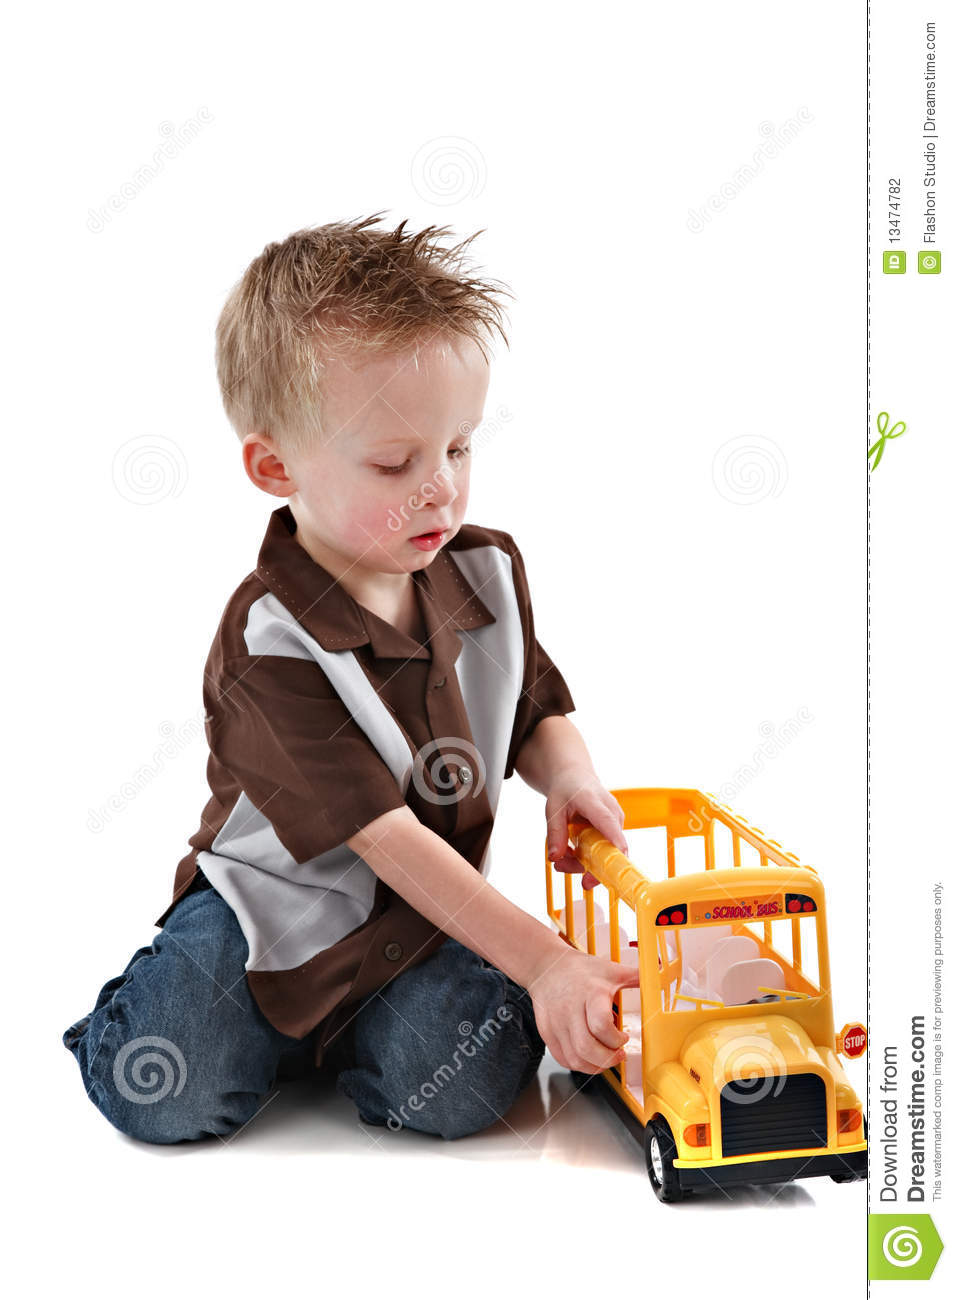 4 Year Boy Bedroom Decorating Ideas: 4 Year Old Boy Plying With Yellow School Bus Toy Stock